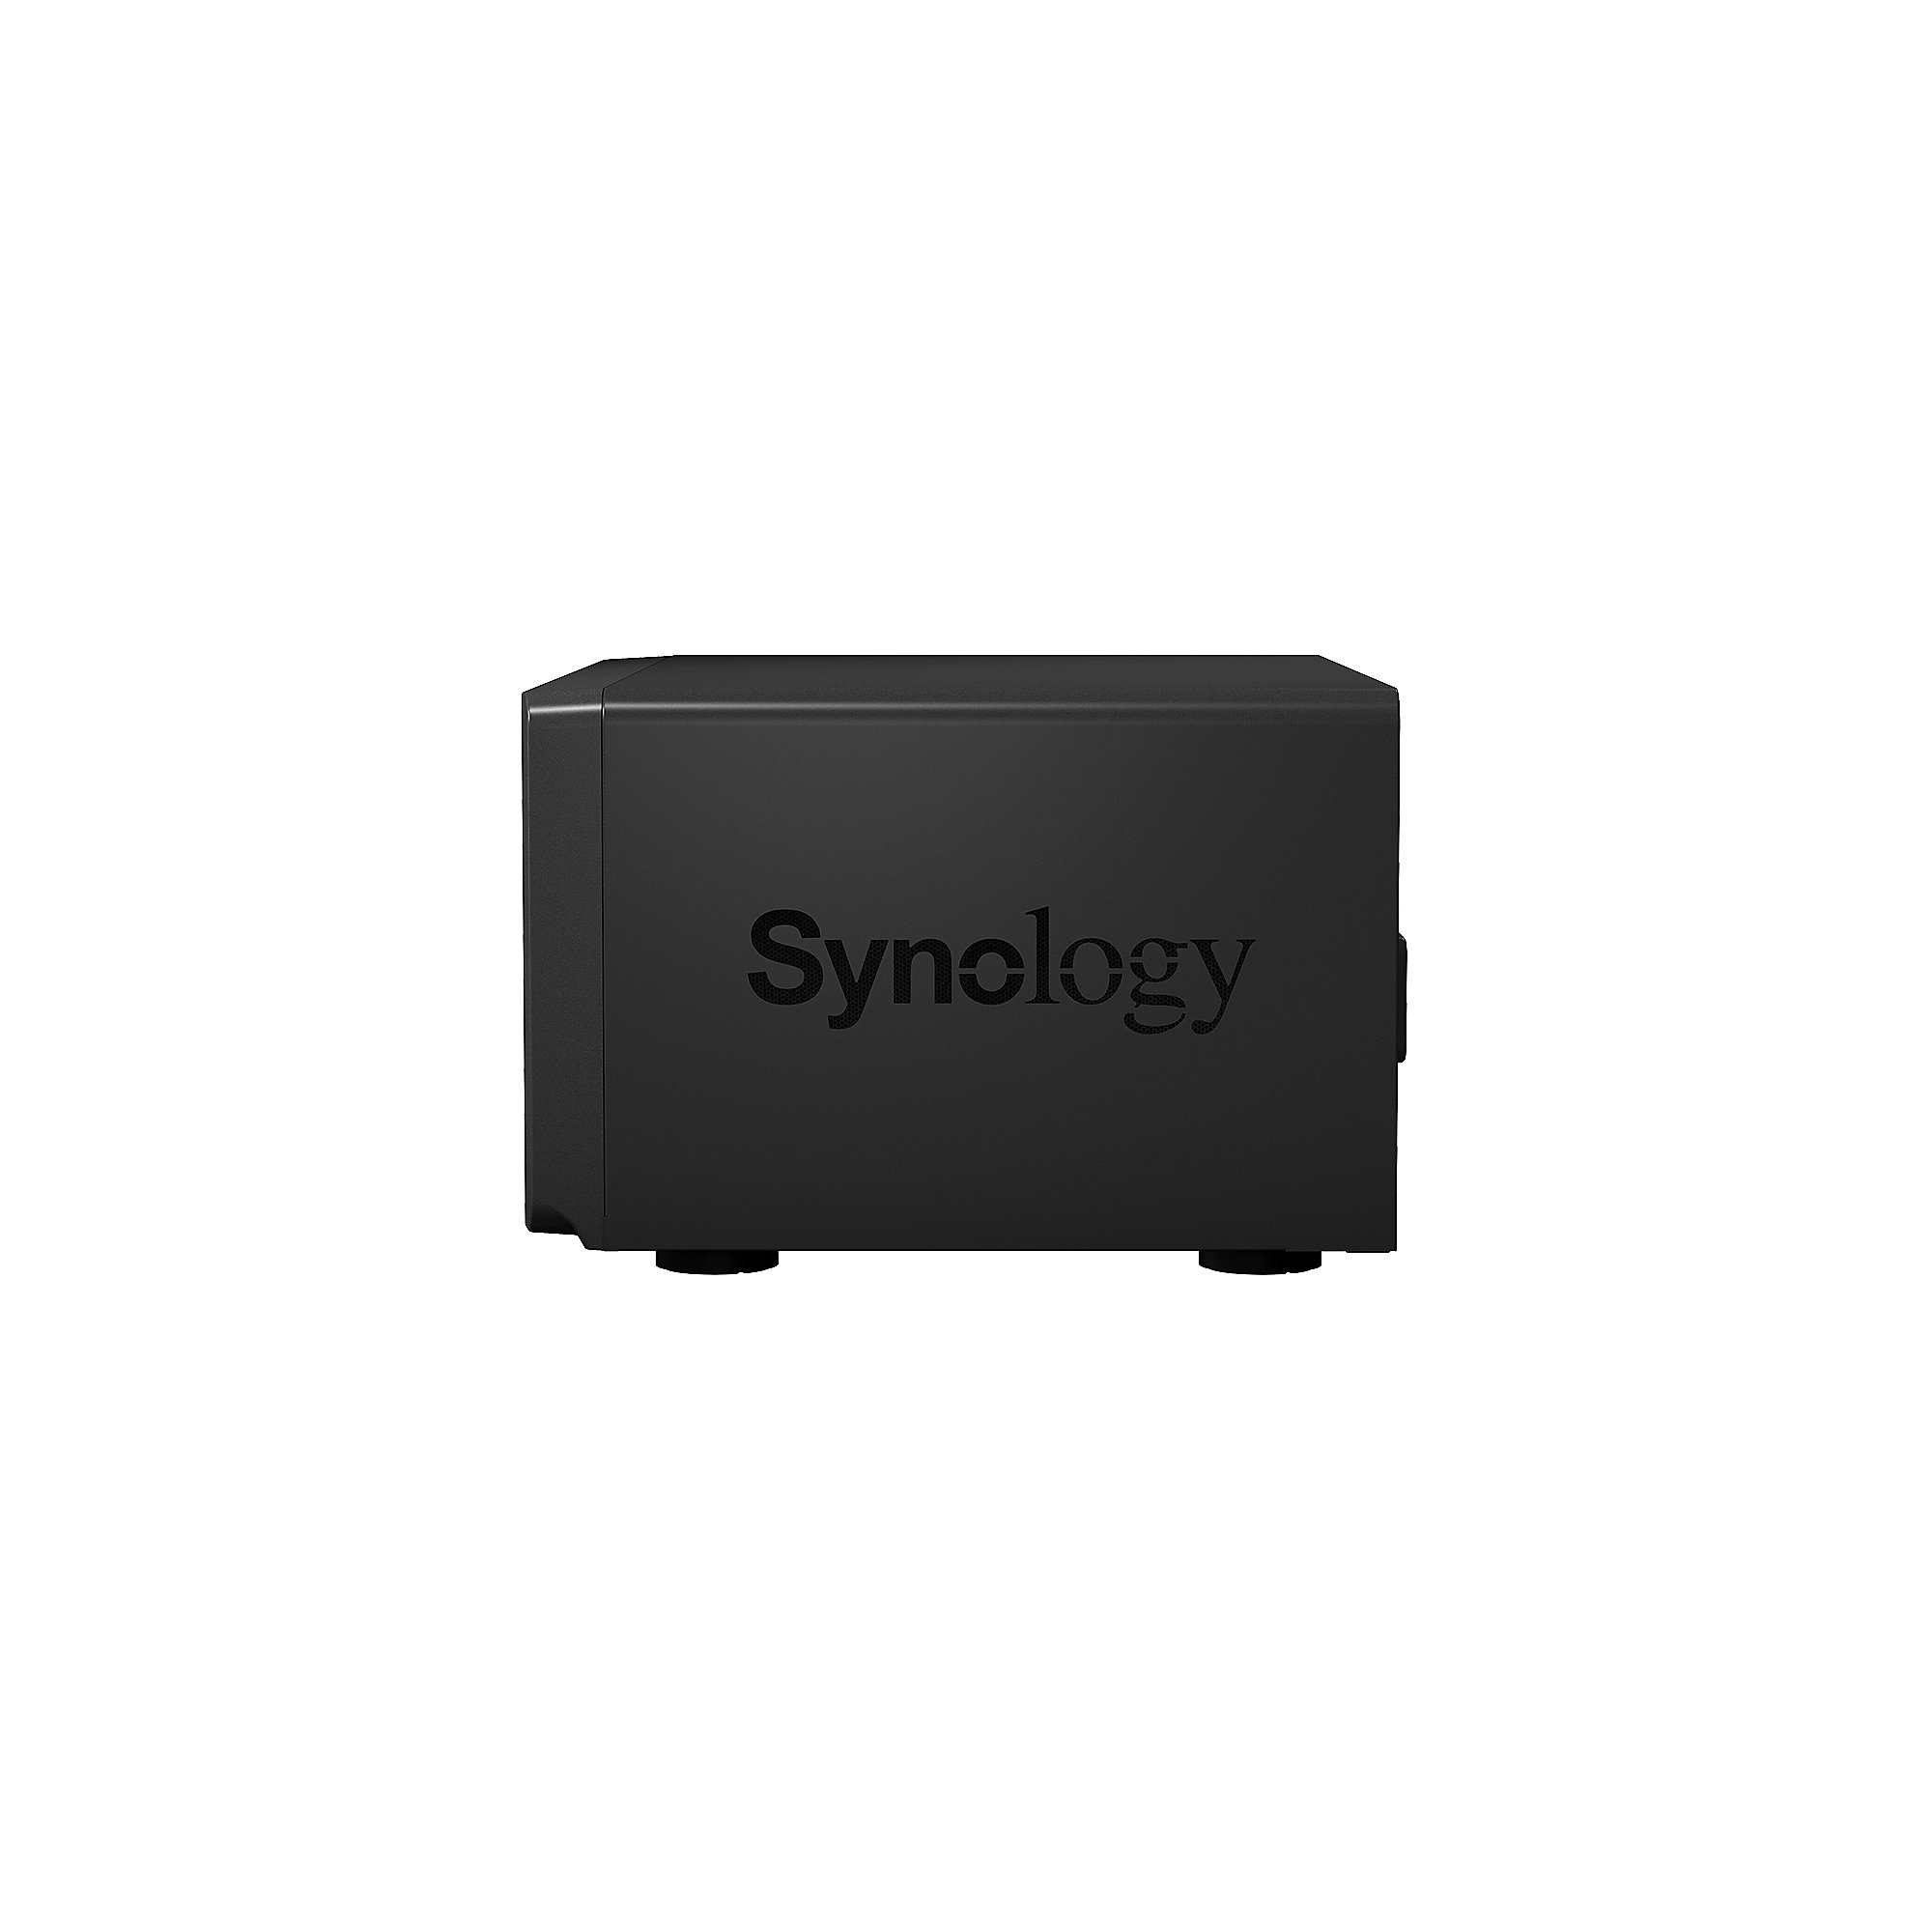 Synology Diskstation DS1817 NAS System 5-Bay - 5 Jahre Garantie